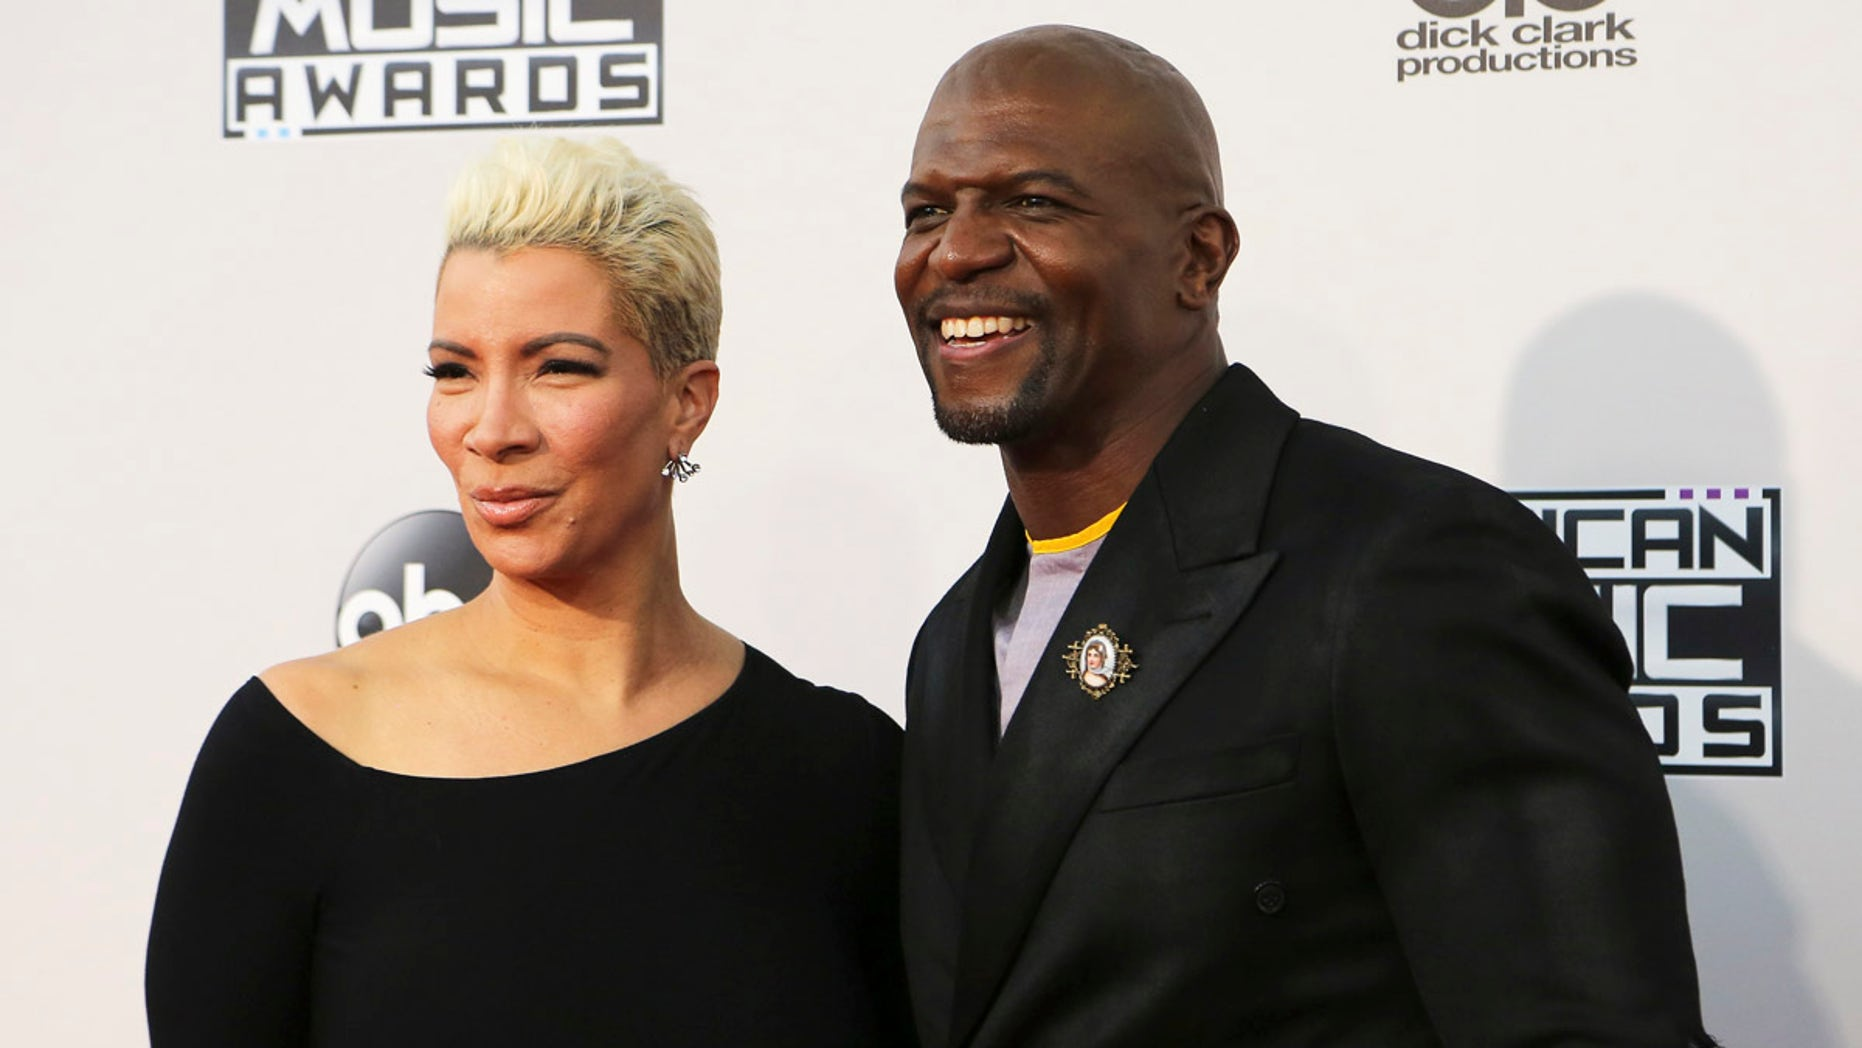 Actor Terry Crews and his wife, Rebecca King-Crews, arrive at the 2015 American Music Awards in Los Angeles, Nov. 22, 2015.